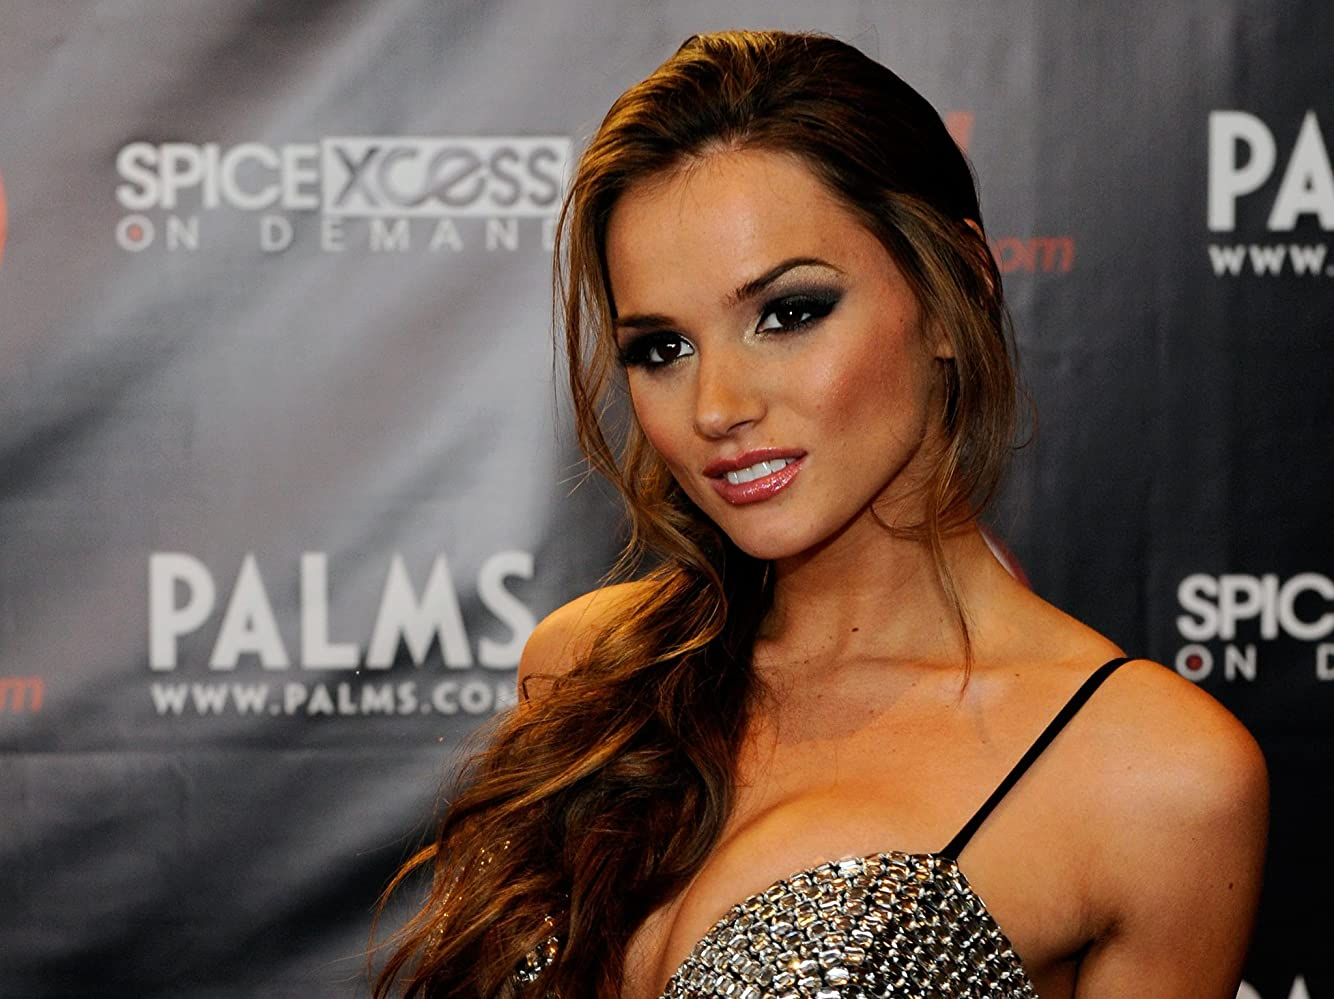 Tori Black nudes (61 foto and video), Pussy, Cleavage, Boobs, braless 2019